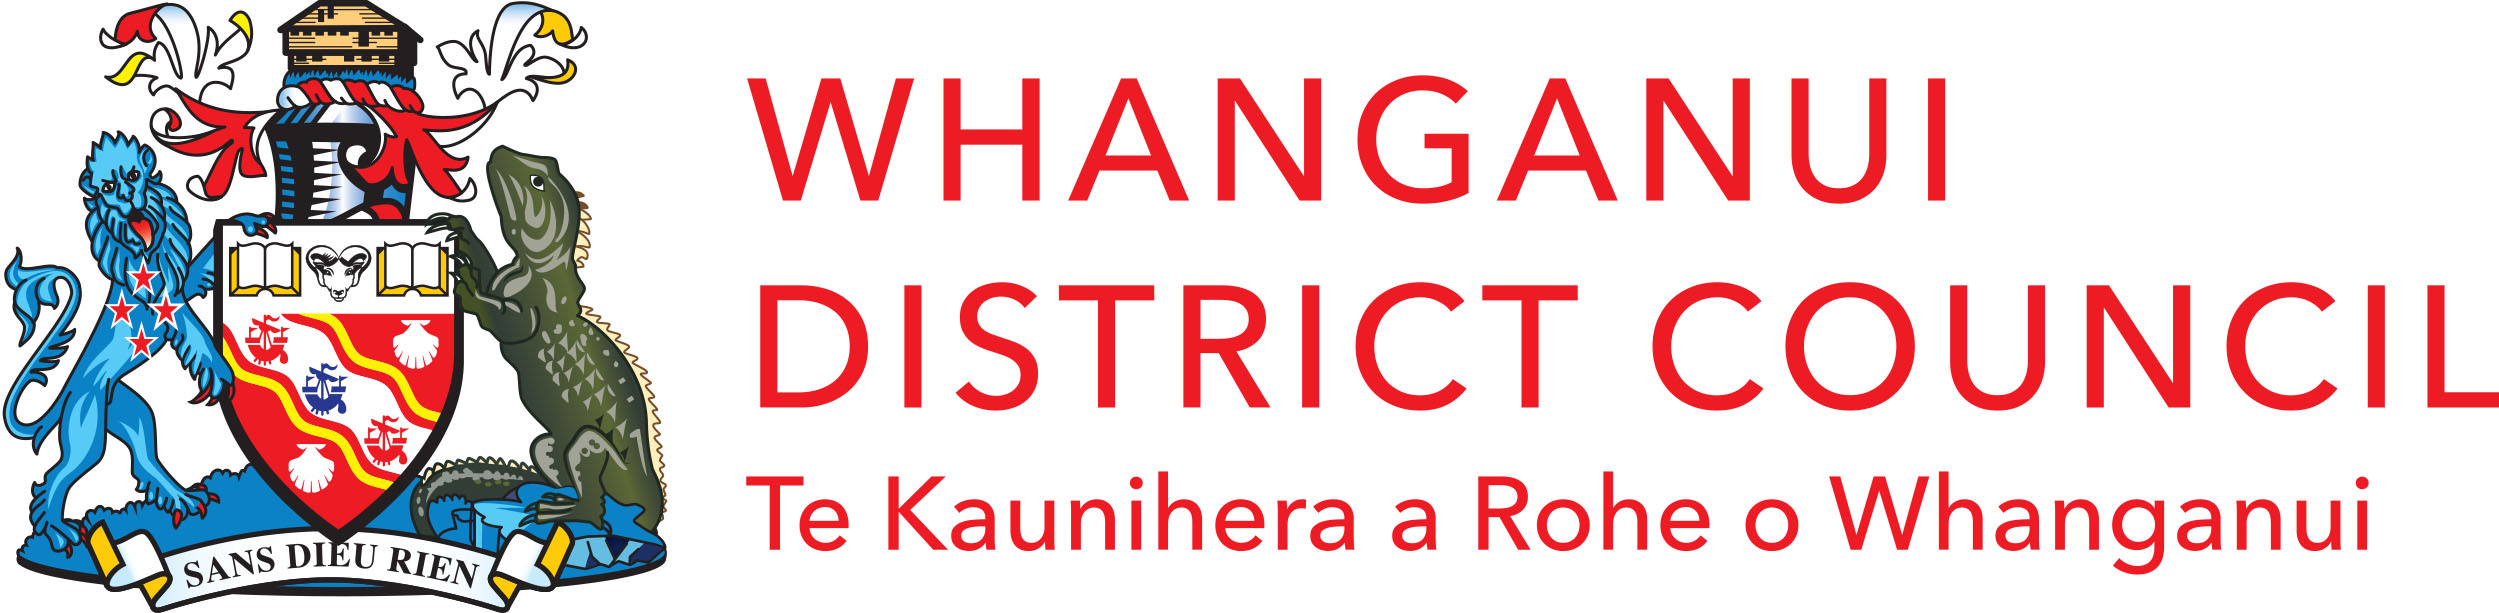 Whanganui District Council logo